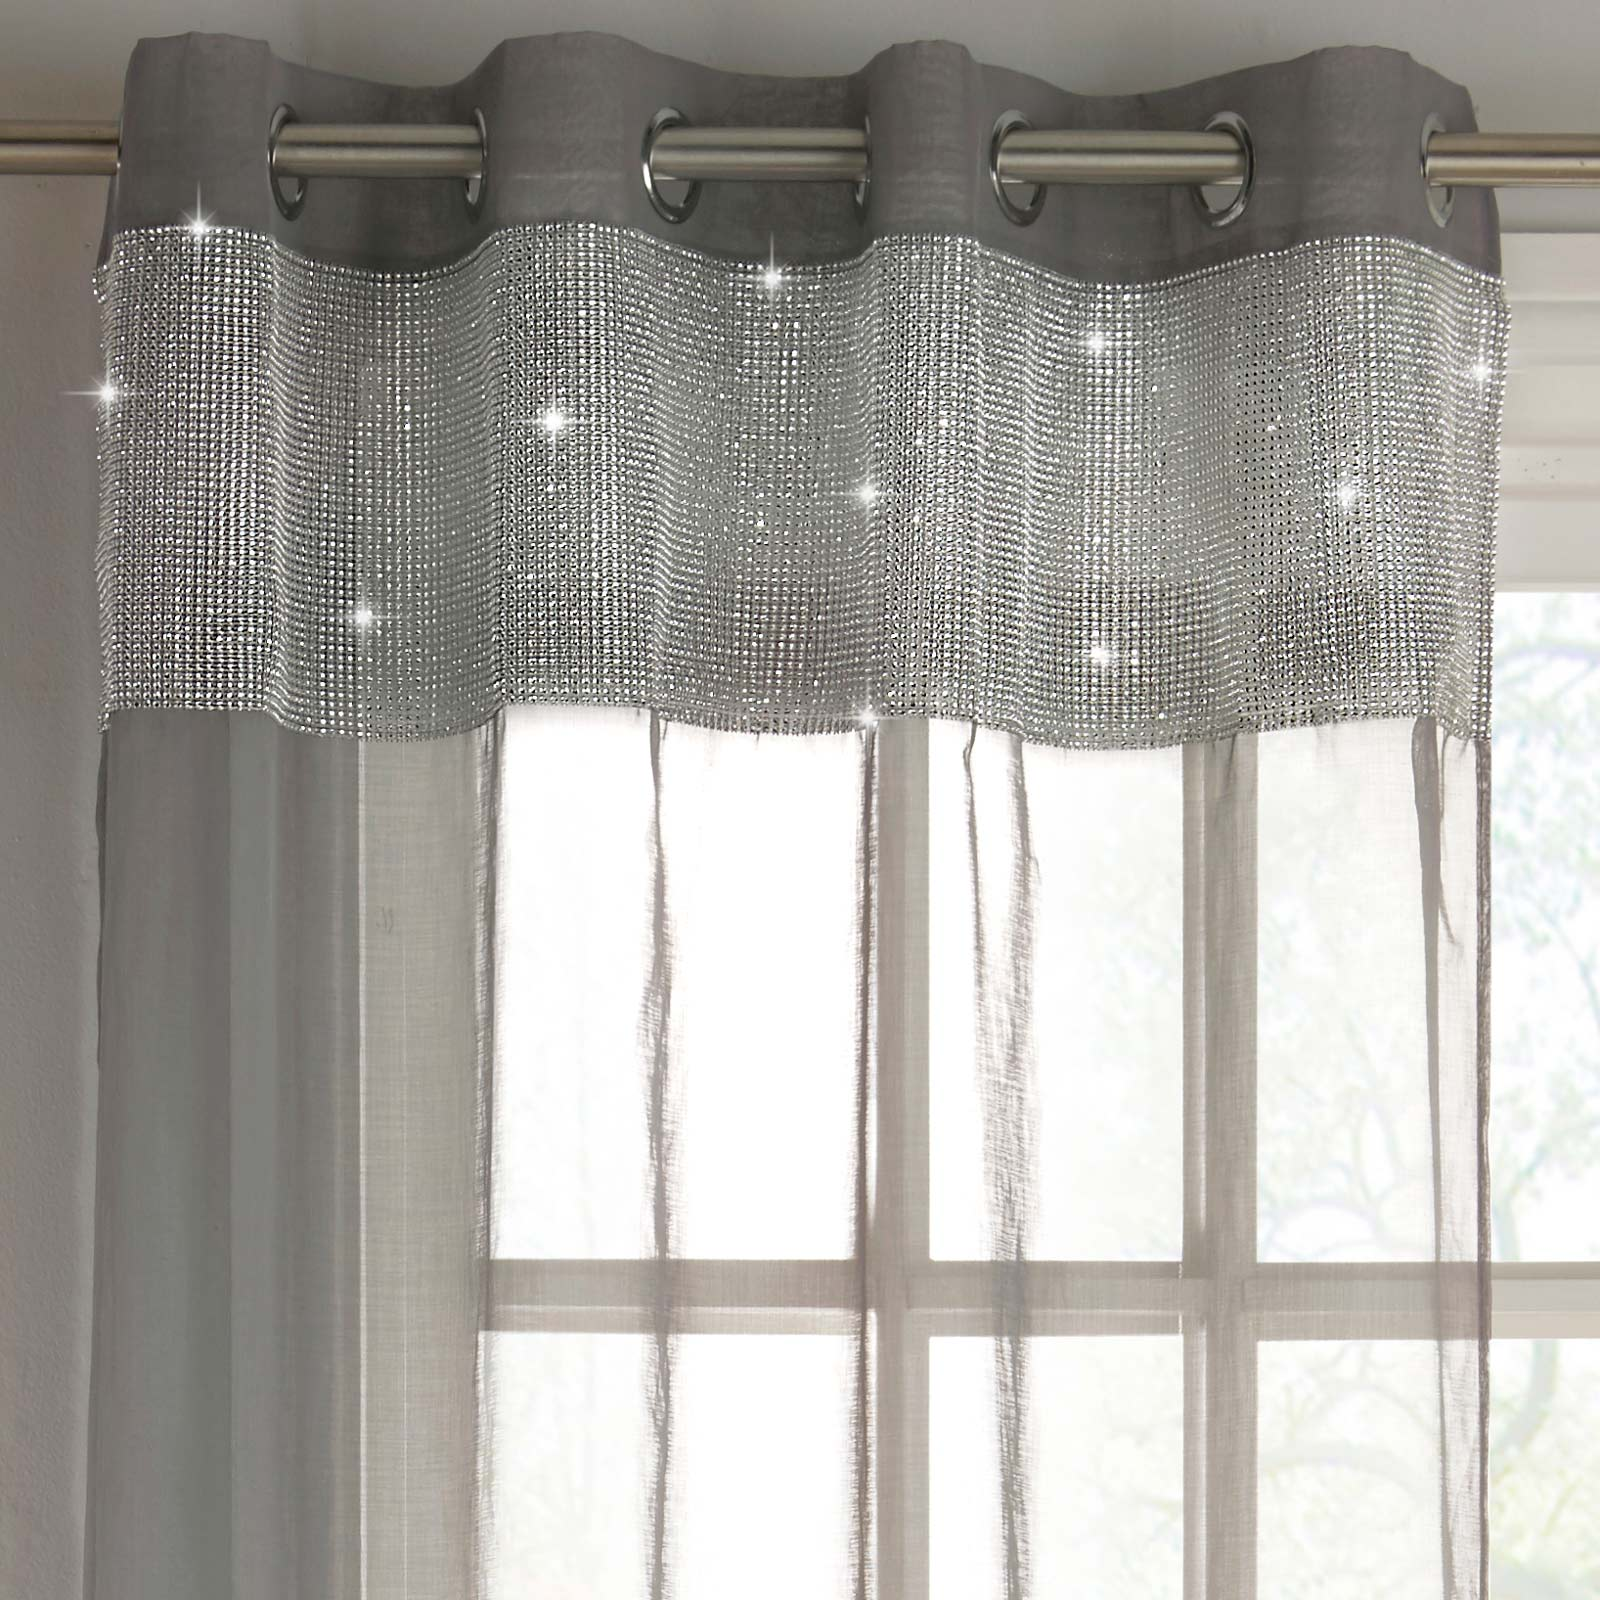 Tiffany Diamante Eyelet Voile Curtain Panels Grey - 55'' x 54'' - Ideal Textiles